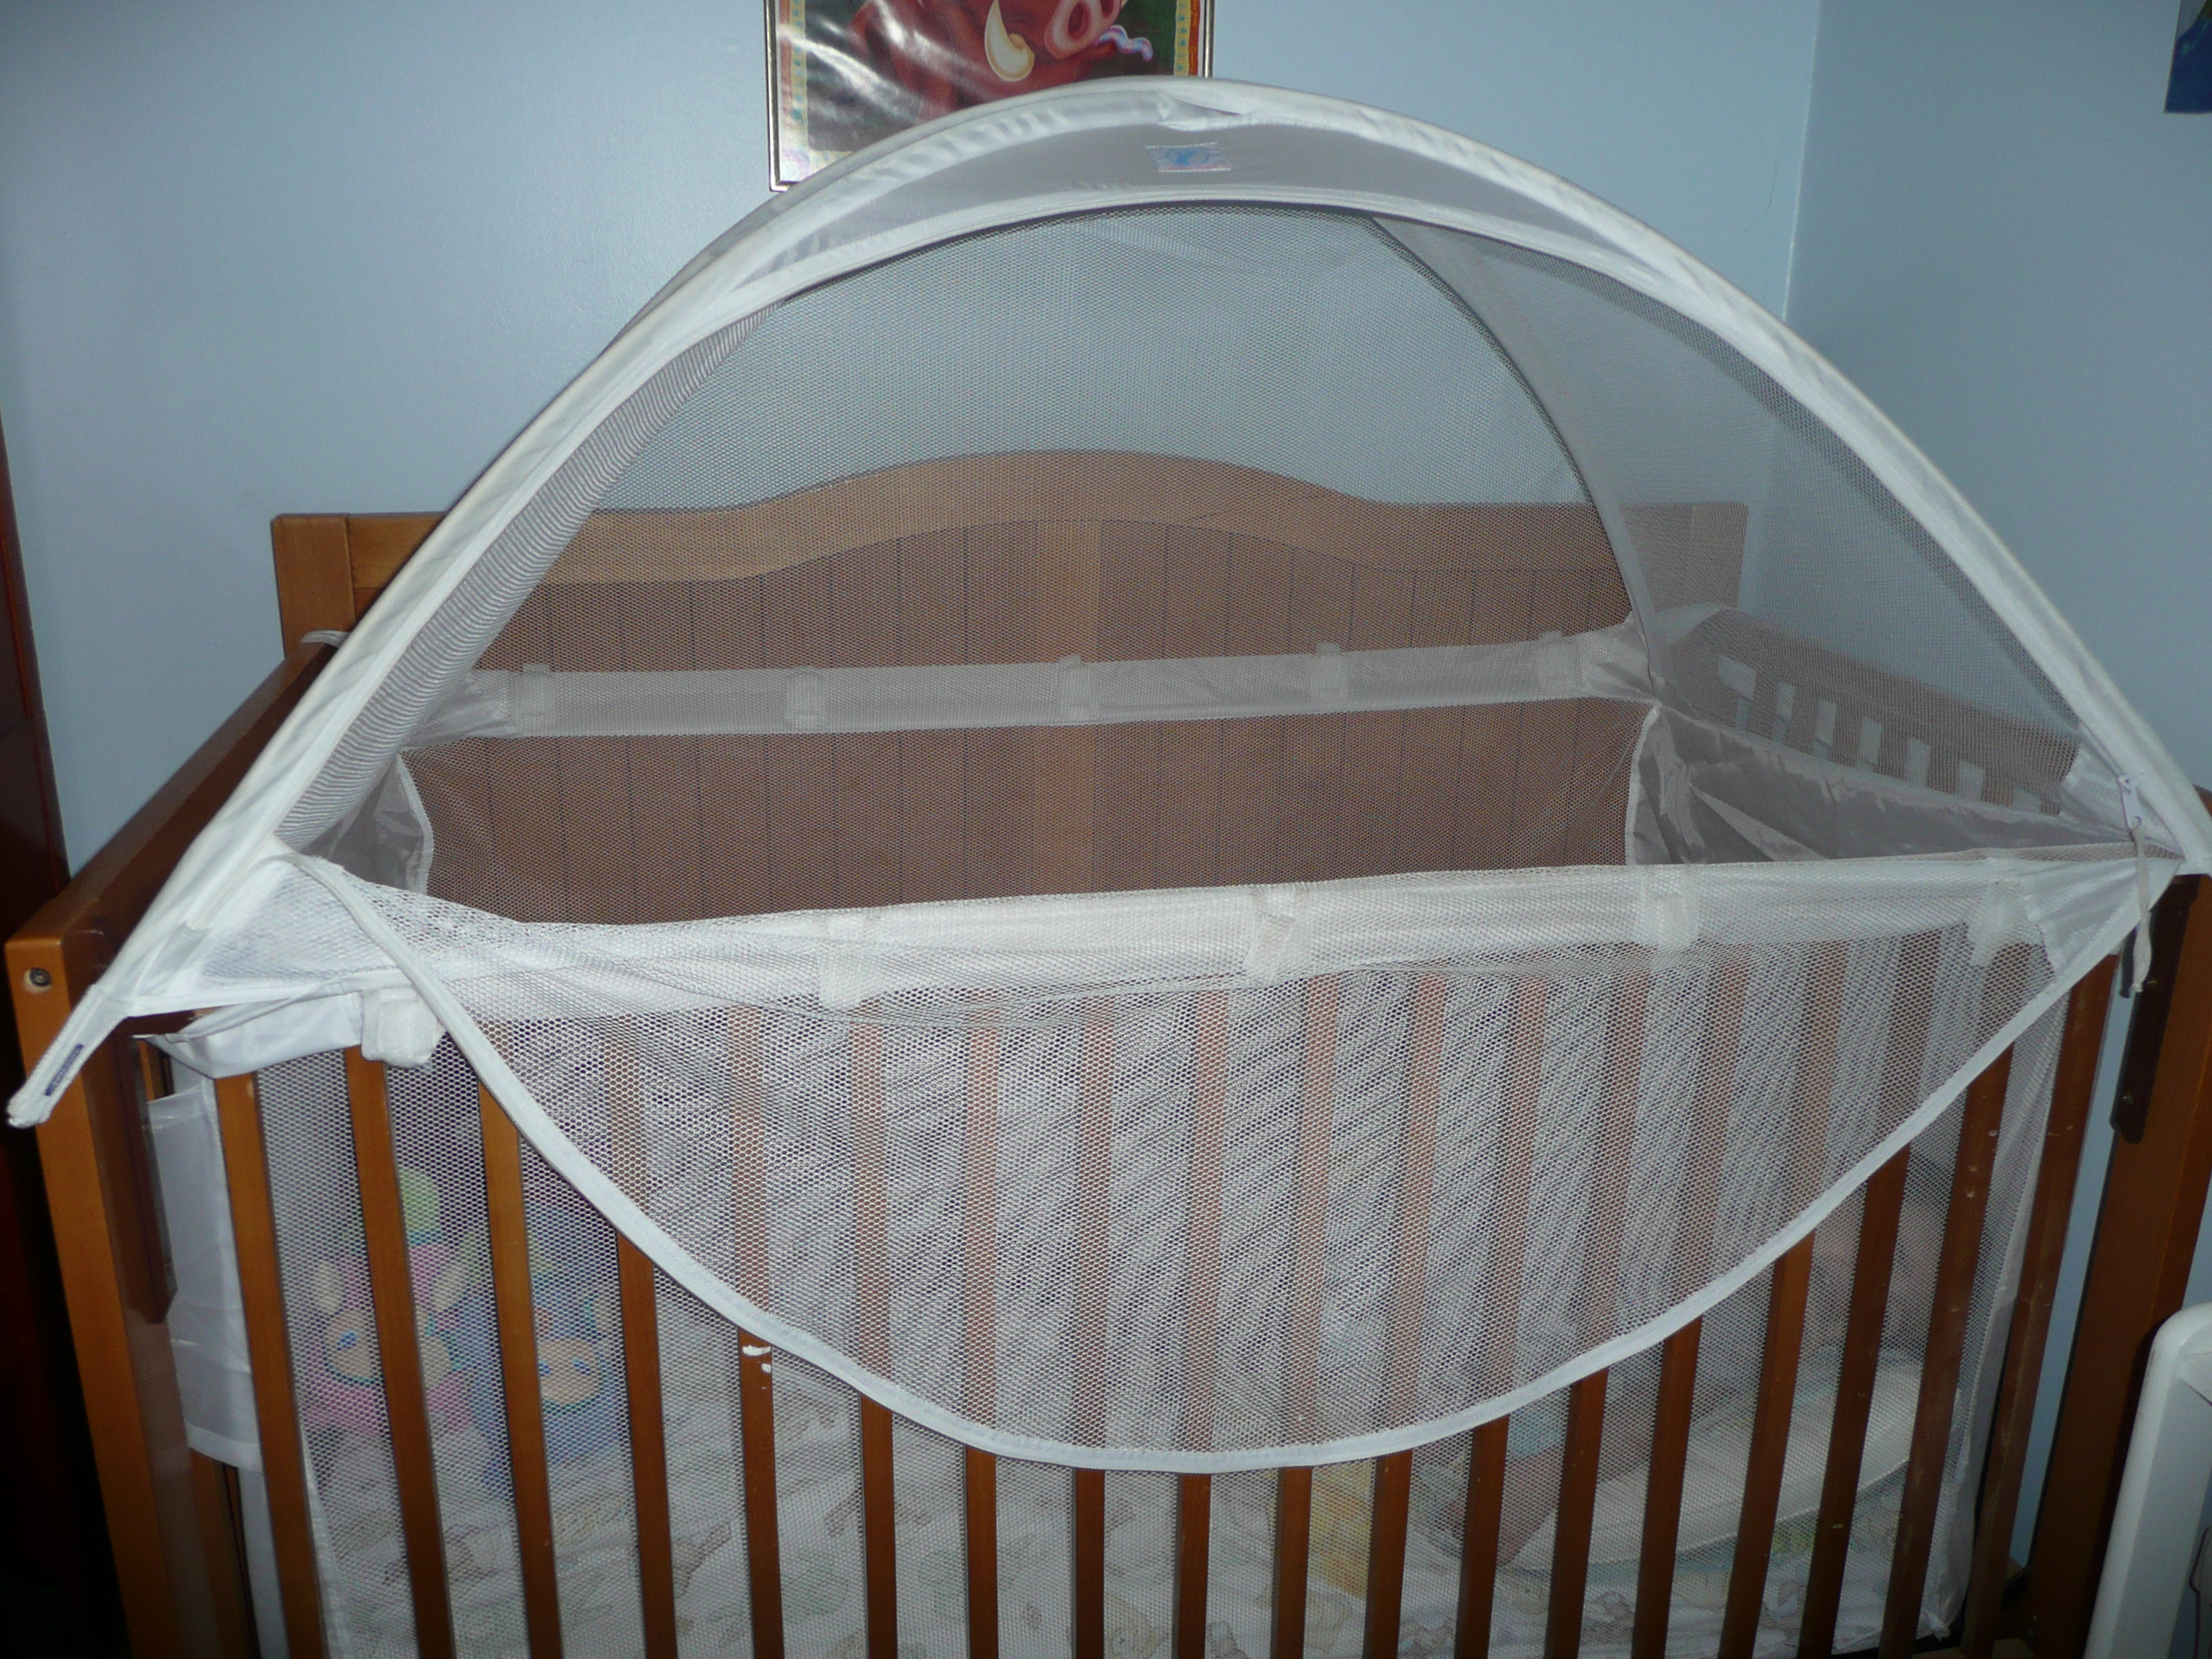 Here ... & How to Stop your Toddler from Climbing out of their Crib